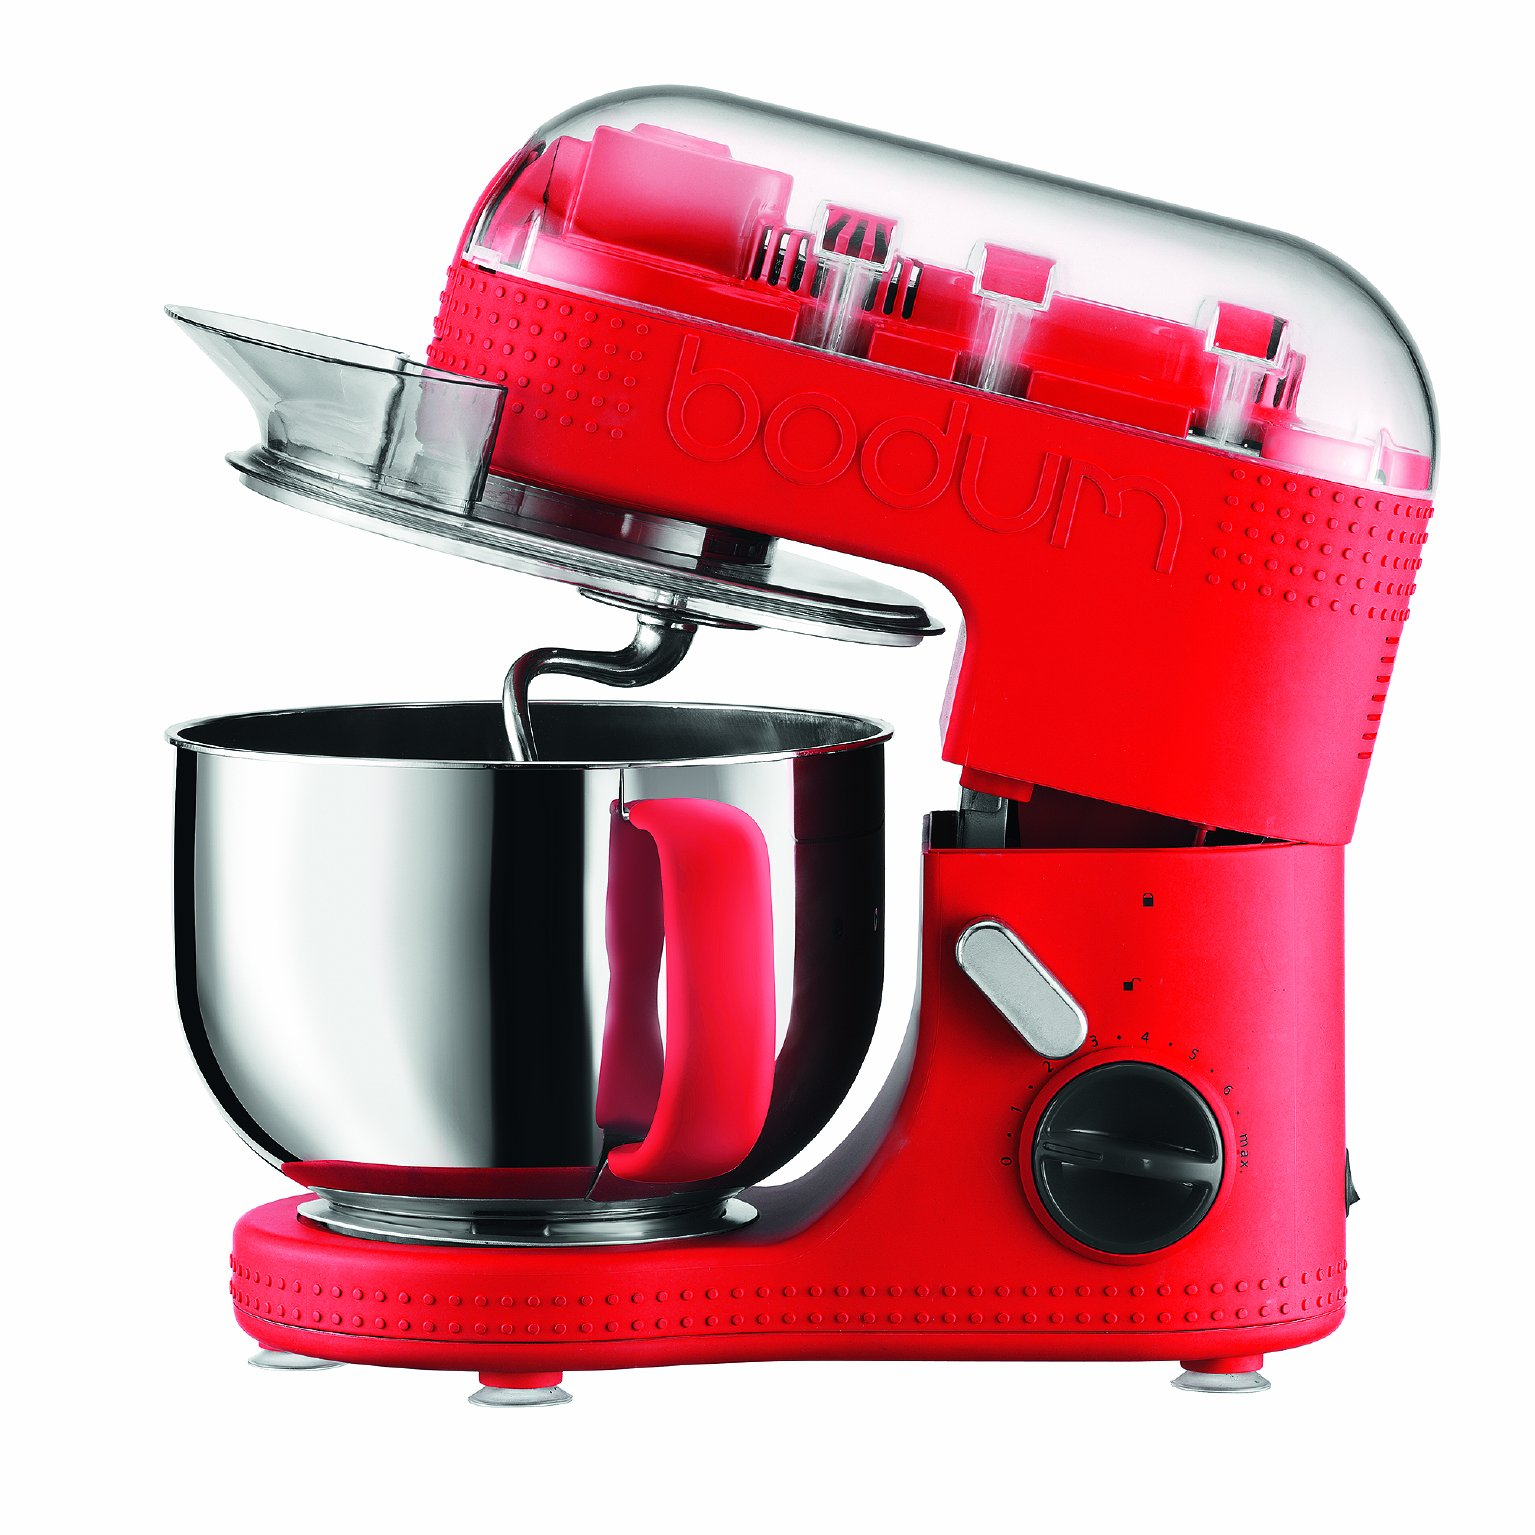 BODUM 11381-294US Bistro Electric Stand Mixer, 4.7-Liter, Red by Bodum